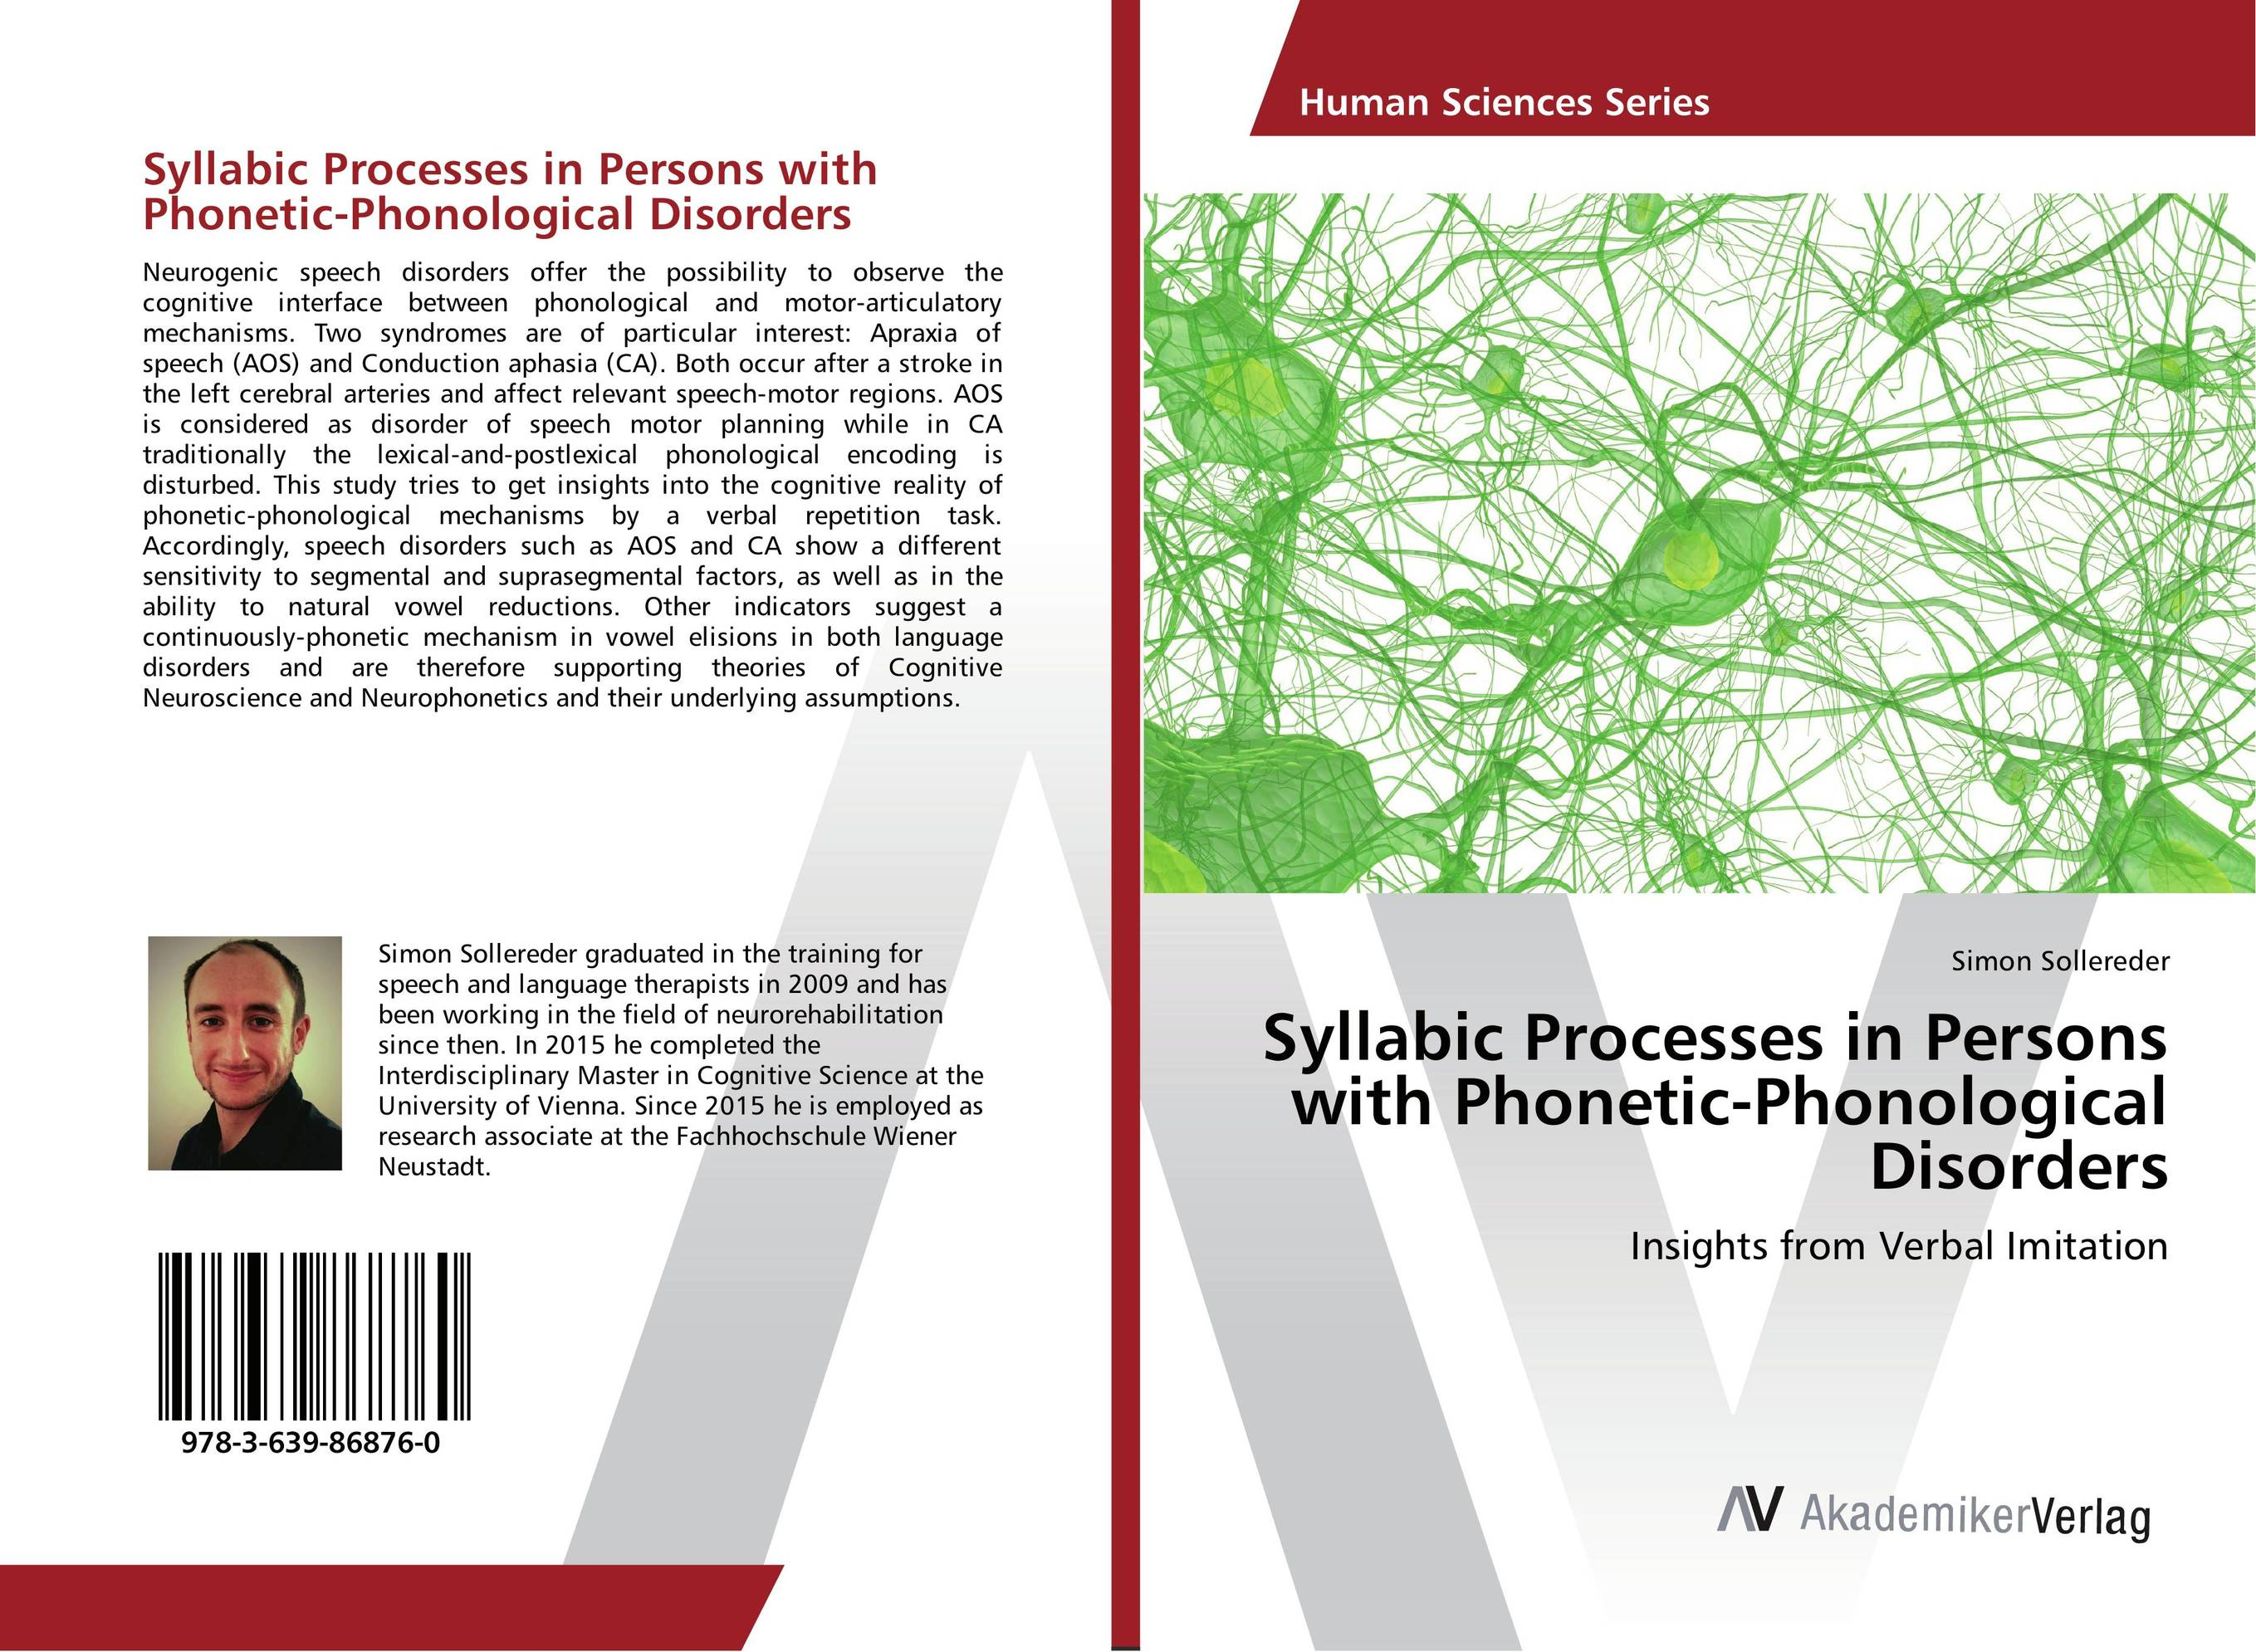 Syllabic Processes in Persons with Phonetic-Phonological Disorders identification processes of articulation and phonemic disorders